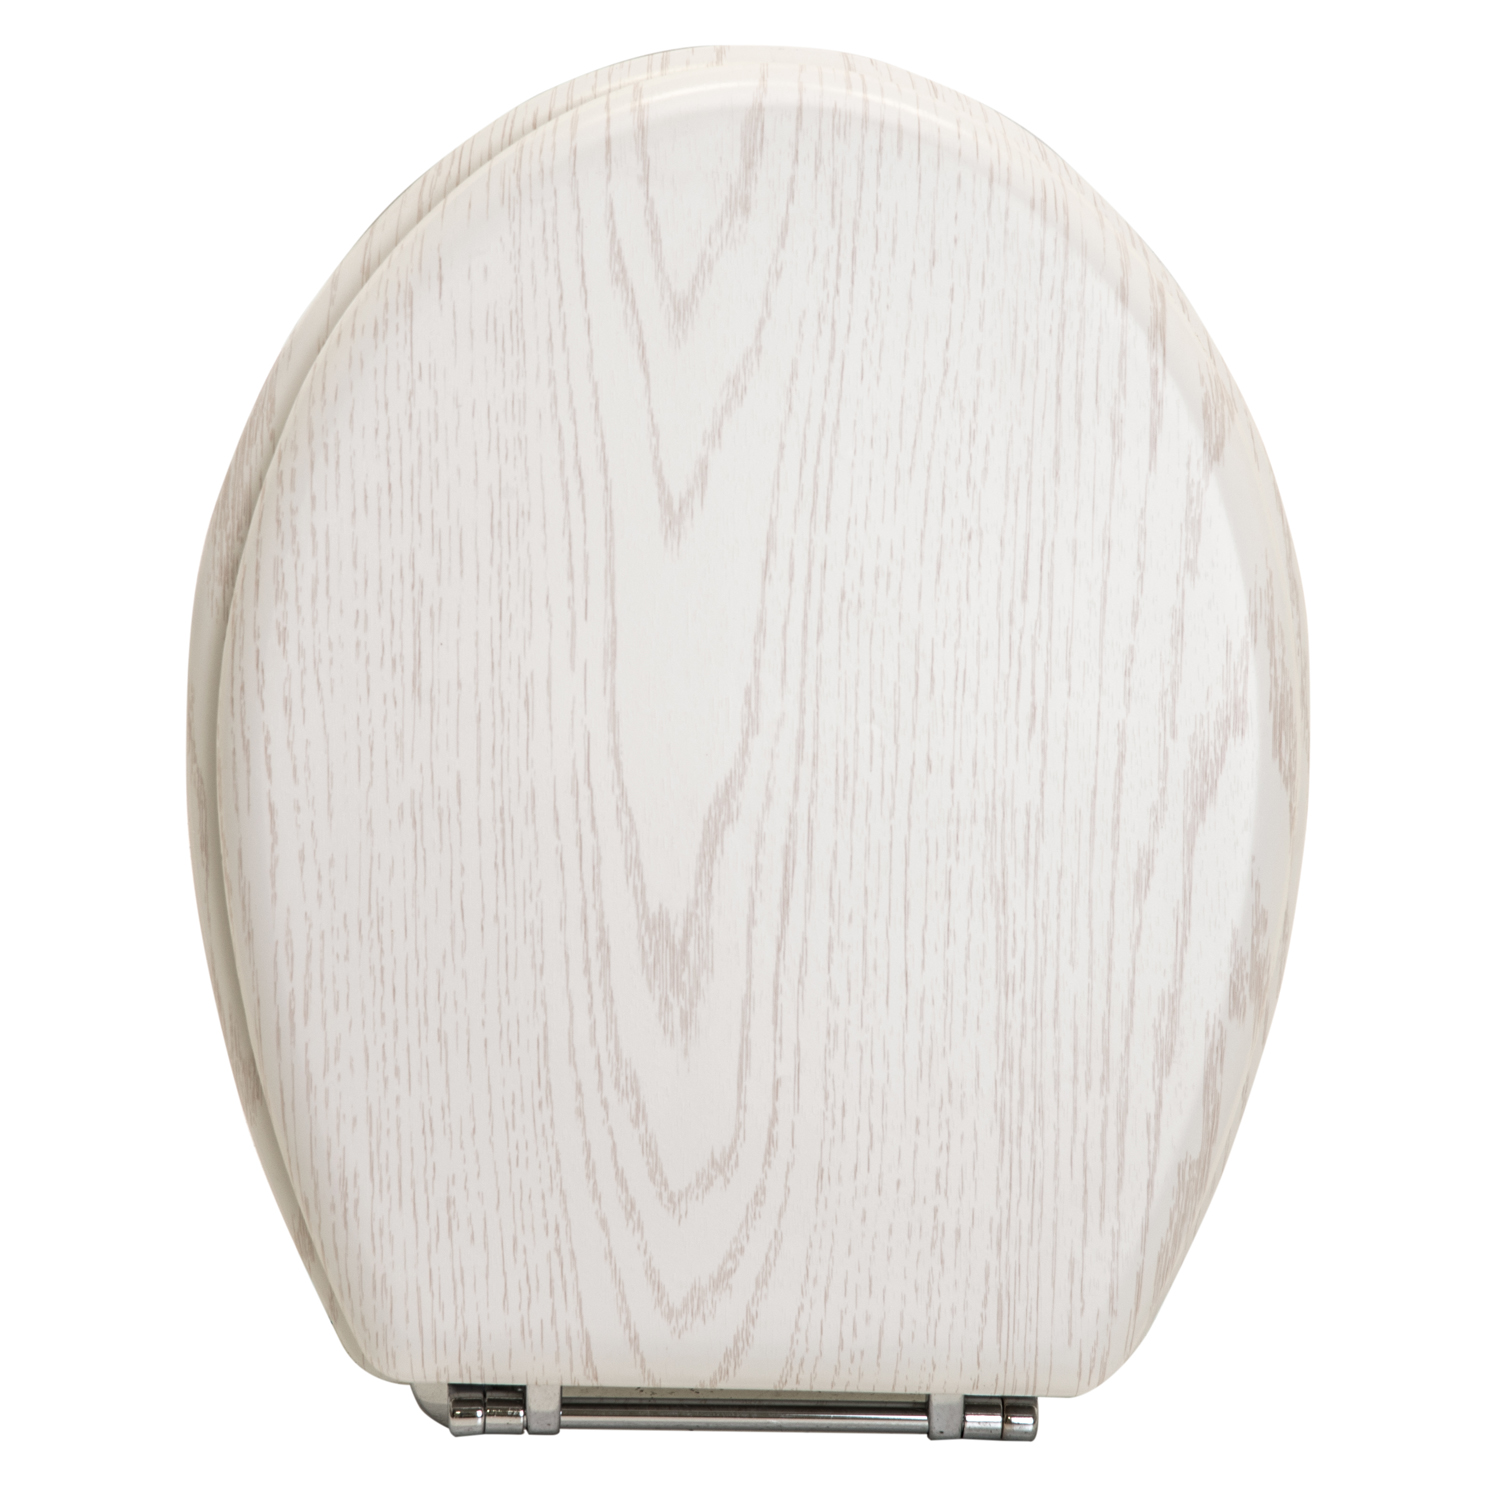 Image of Casa Wooden Toilet Seat, Pale Beech